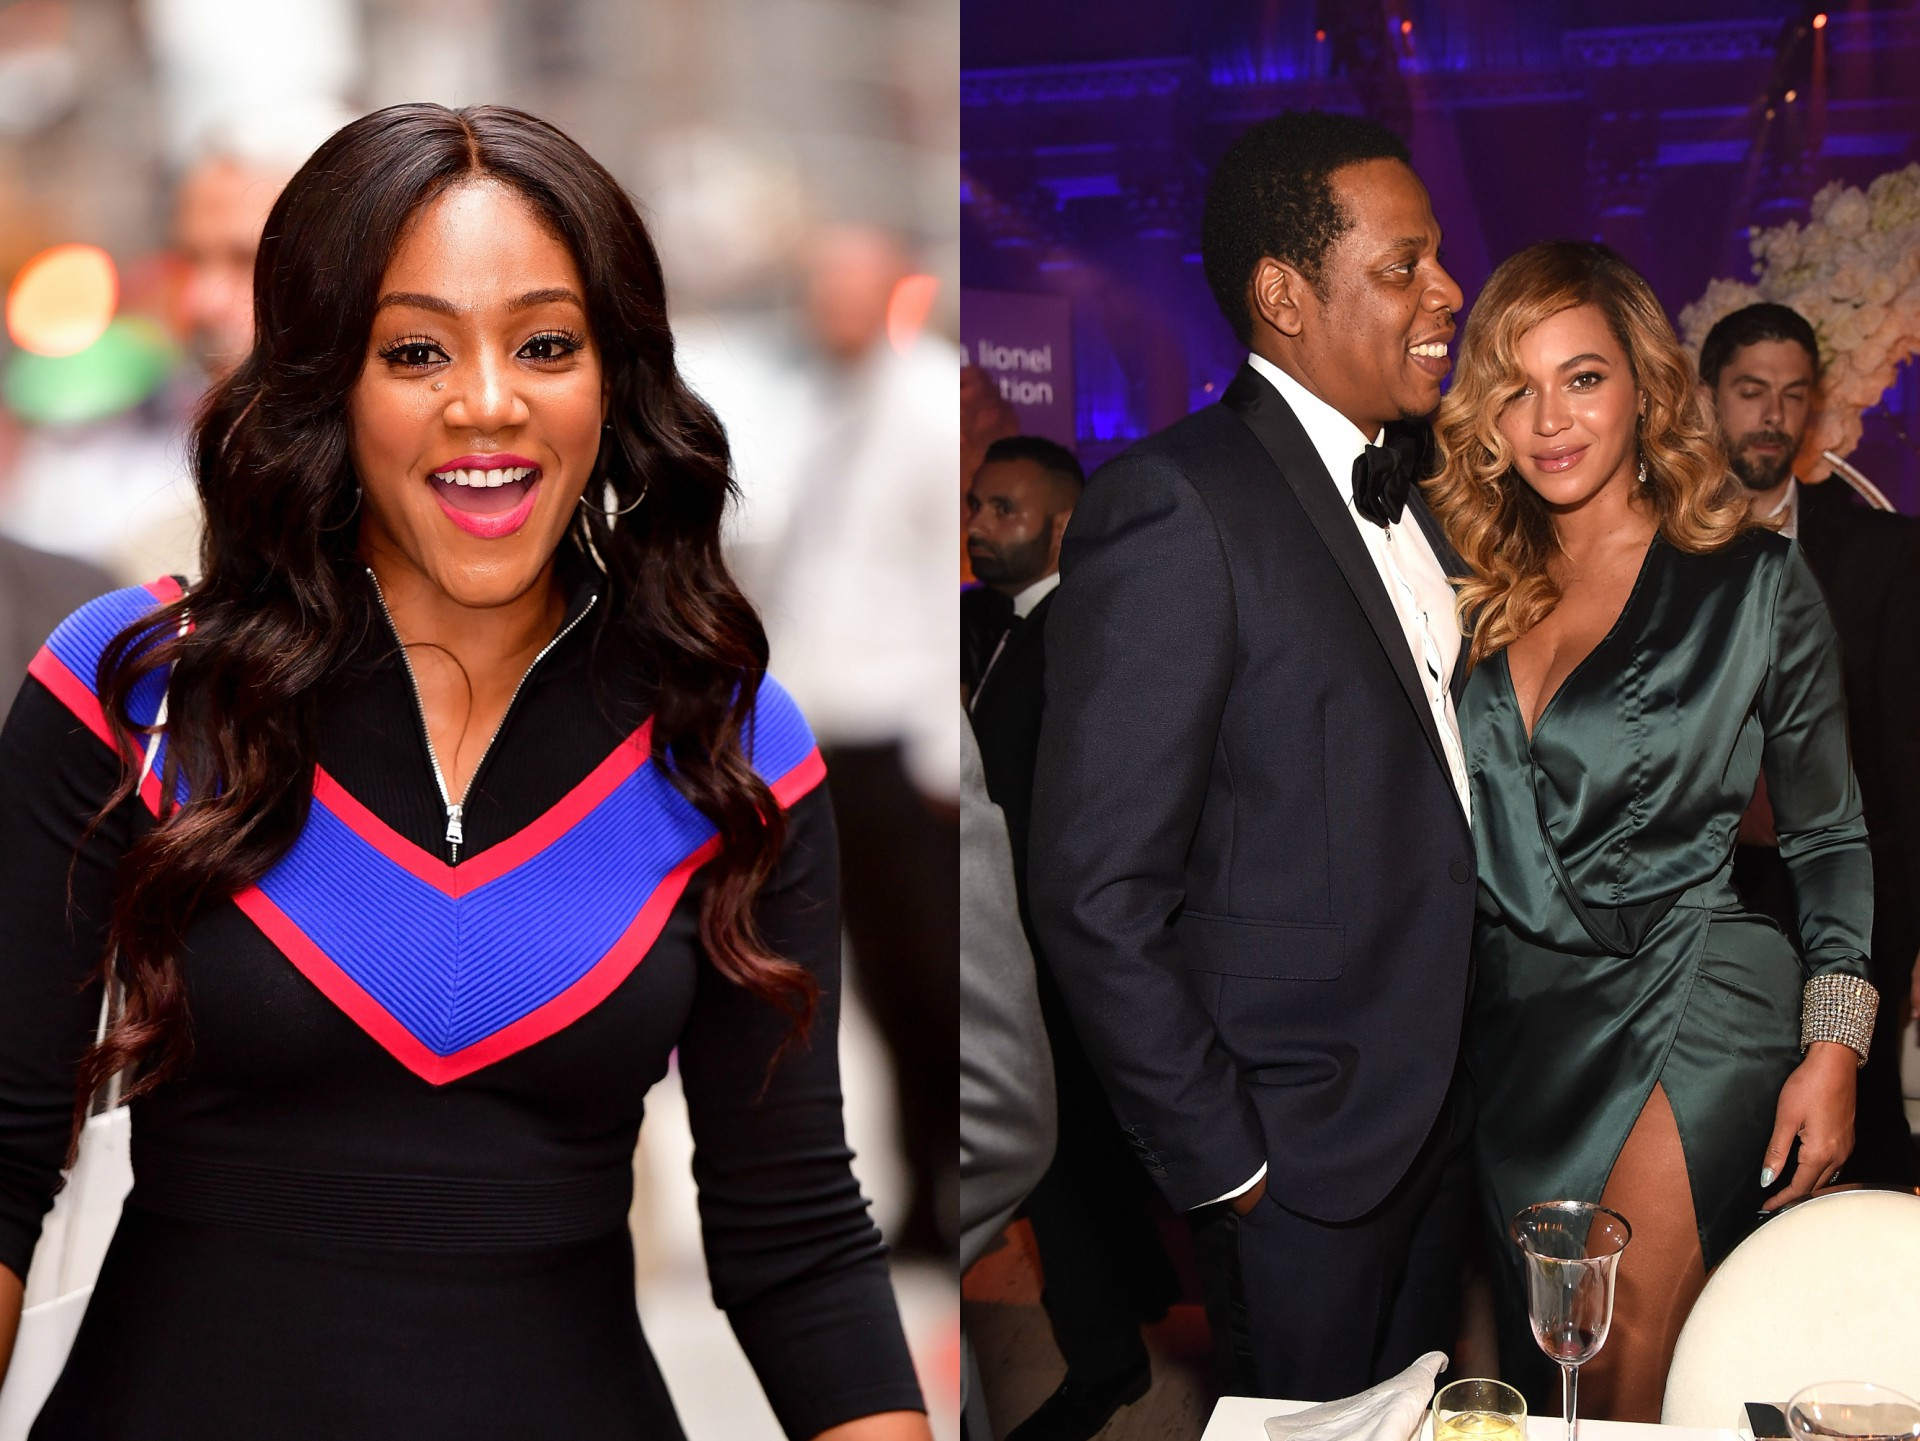 Beyonce Scares Women Away From Jay-Z With Body Language Alone